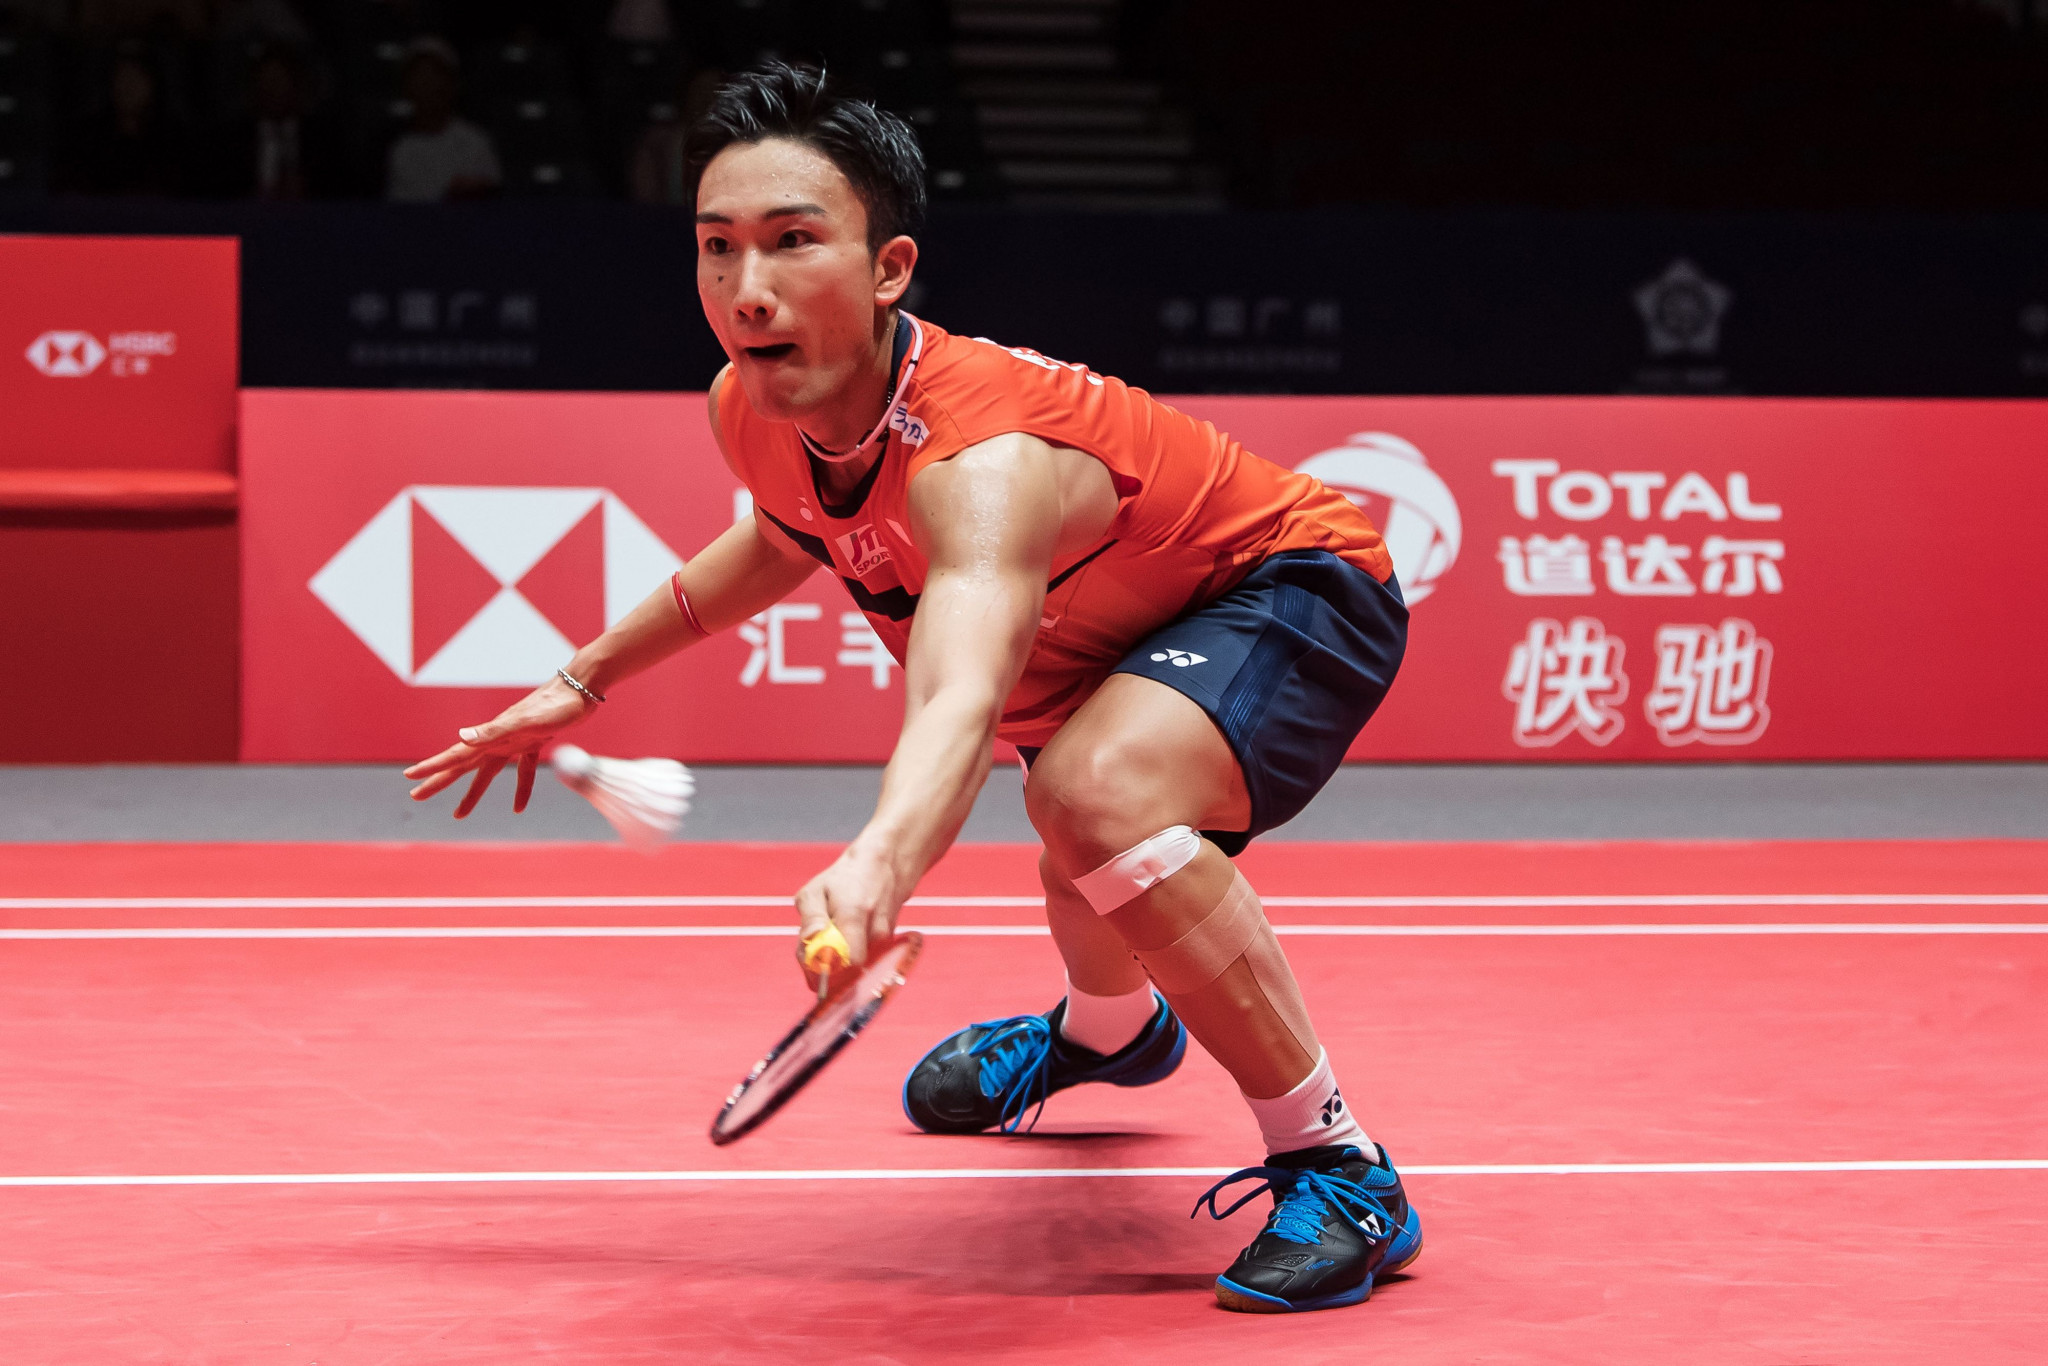 Kento Momota won in three games to boost his semi-final hopes ©Getty Images